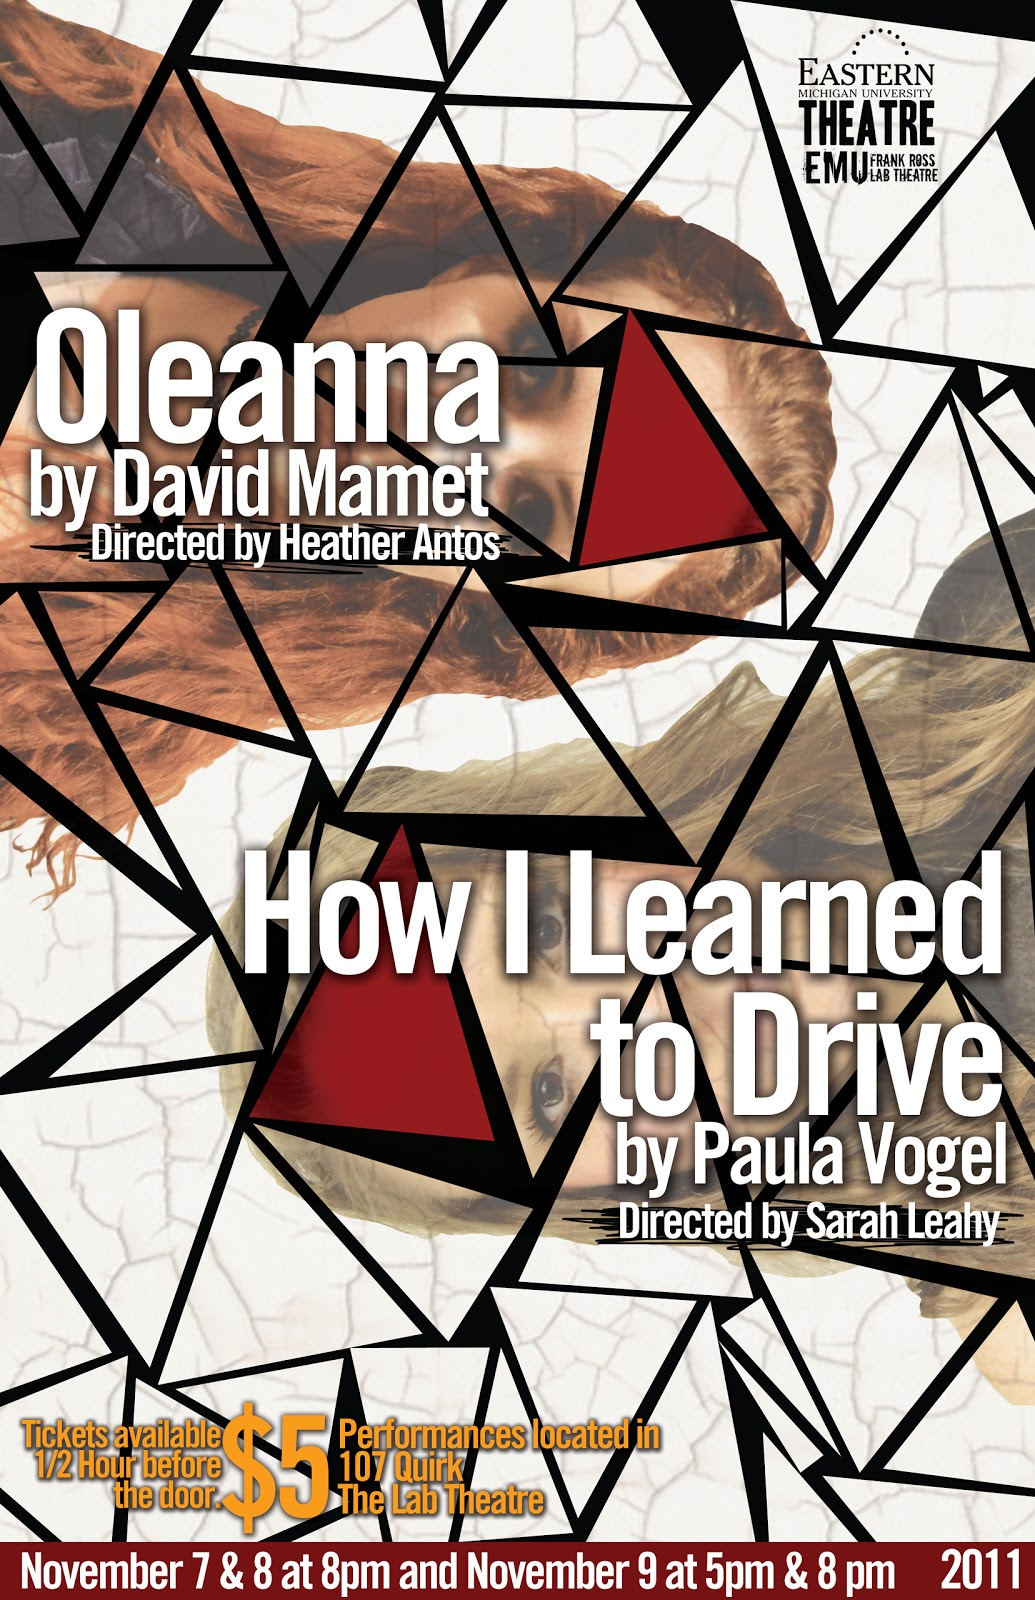 an analysis of the story oleanna by david mamets Top story david mamet david mamet has written a play about harvey weinstein share on facebook tweet this story 0 breaking news and analysis on all the.